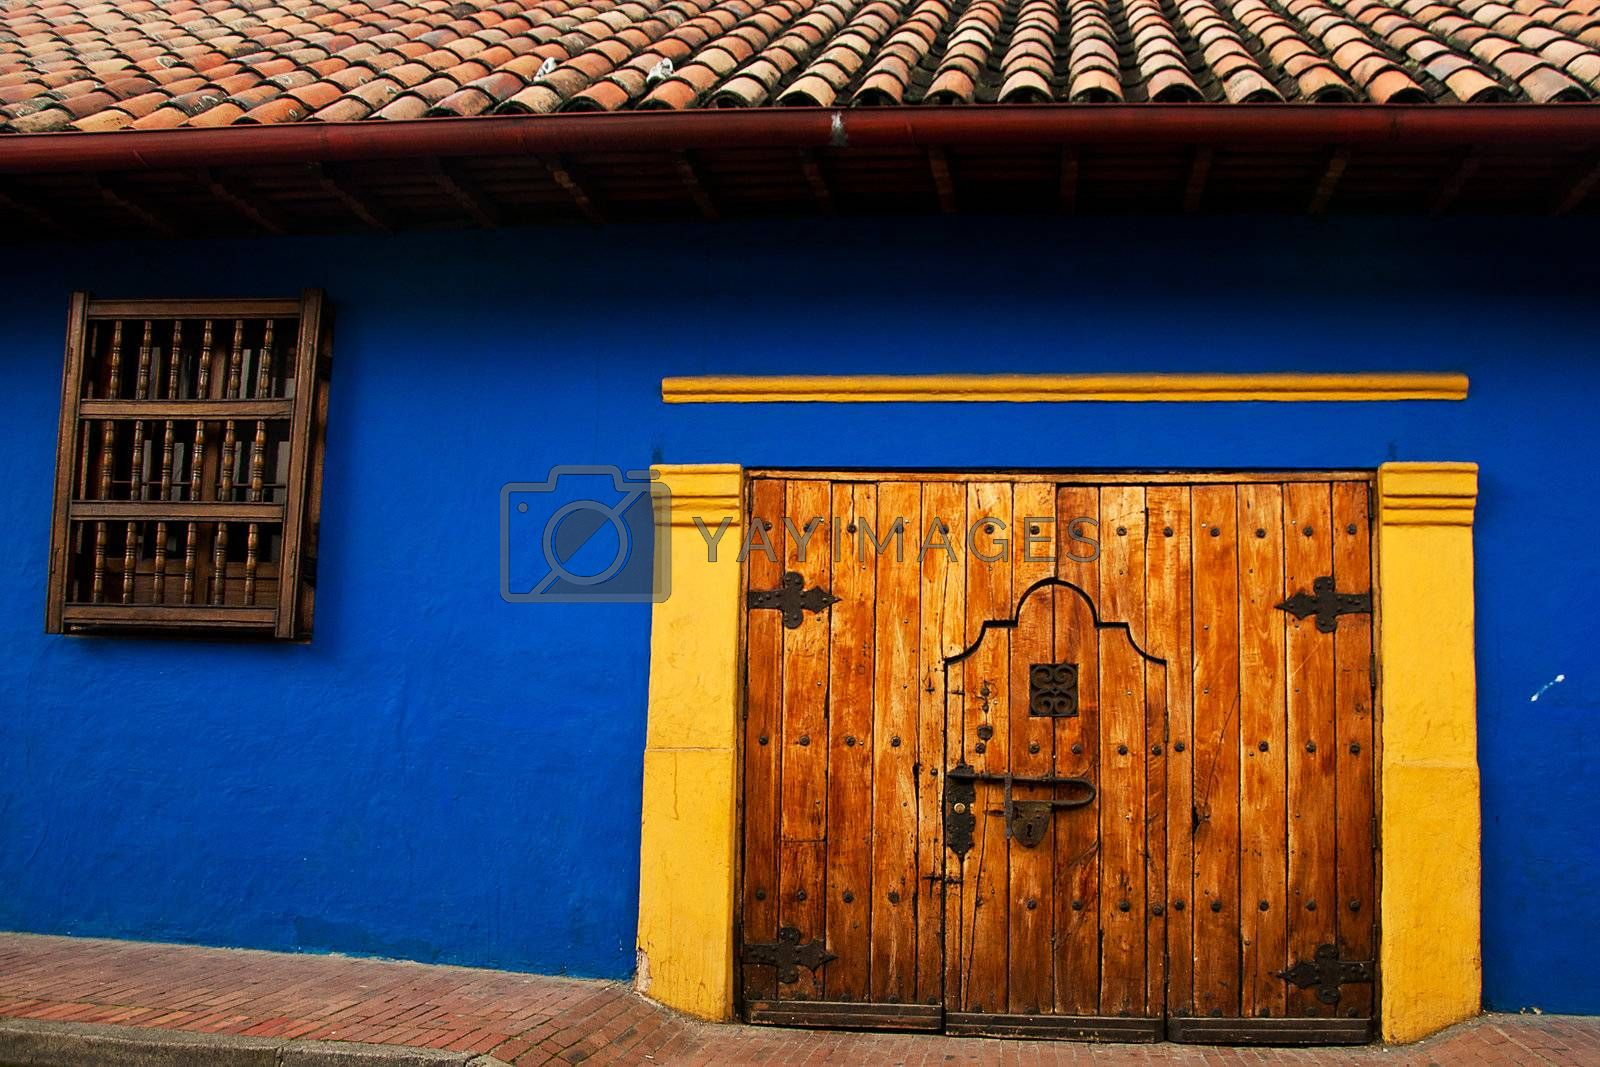 Blue wall in the Spanish colonial style in the neighborhood La Candelaria in Bogota, Colombia.